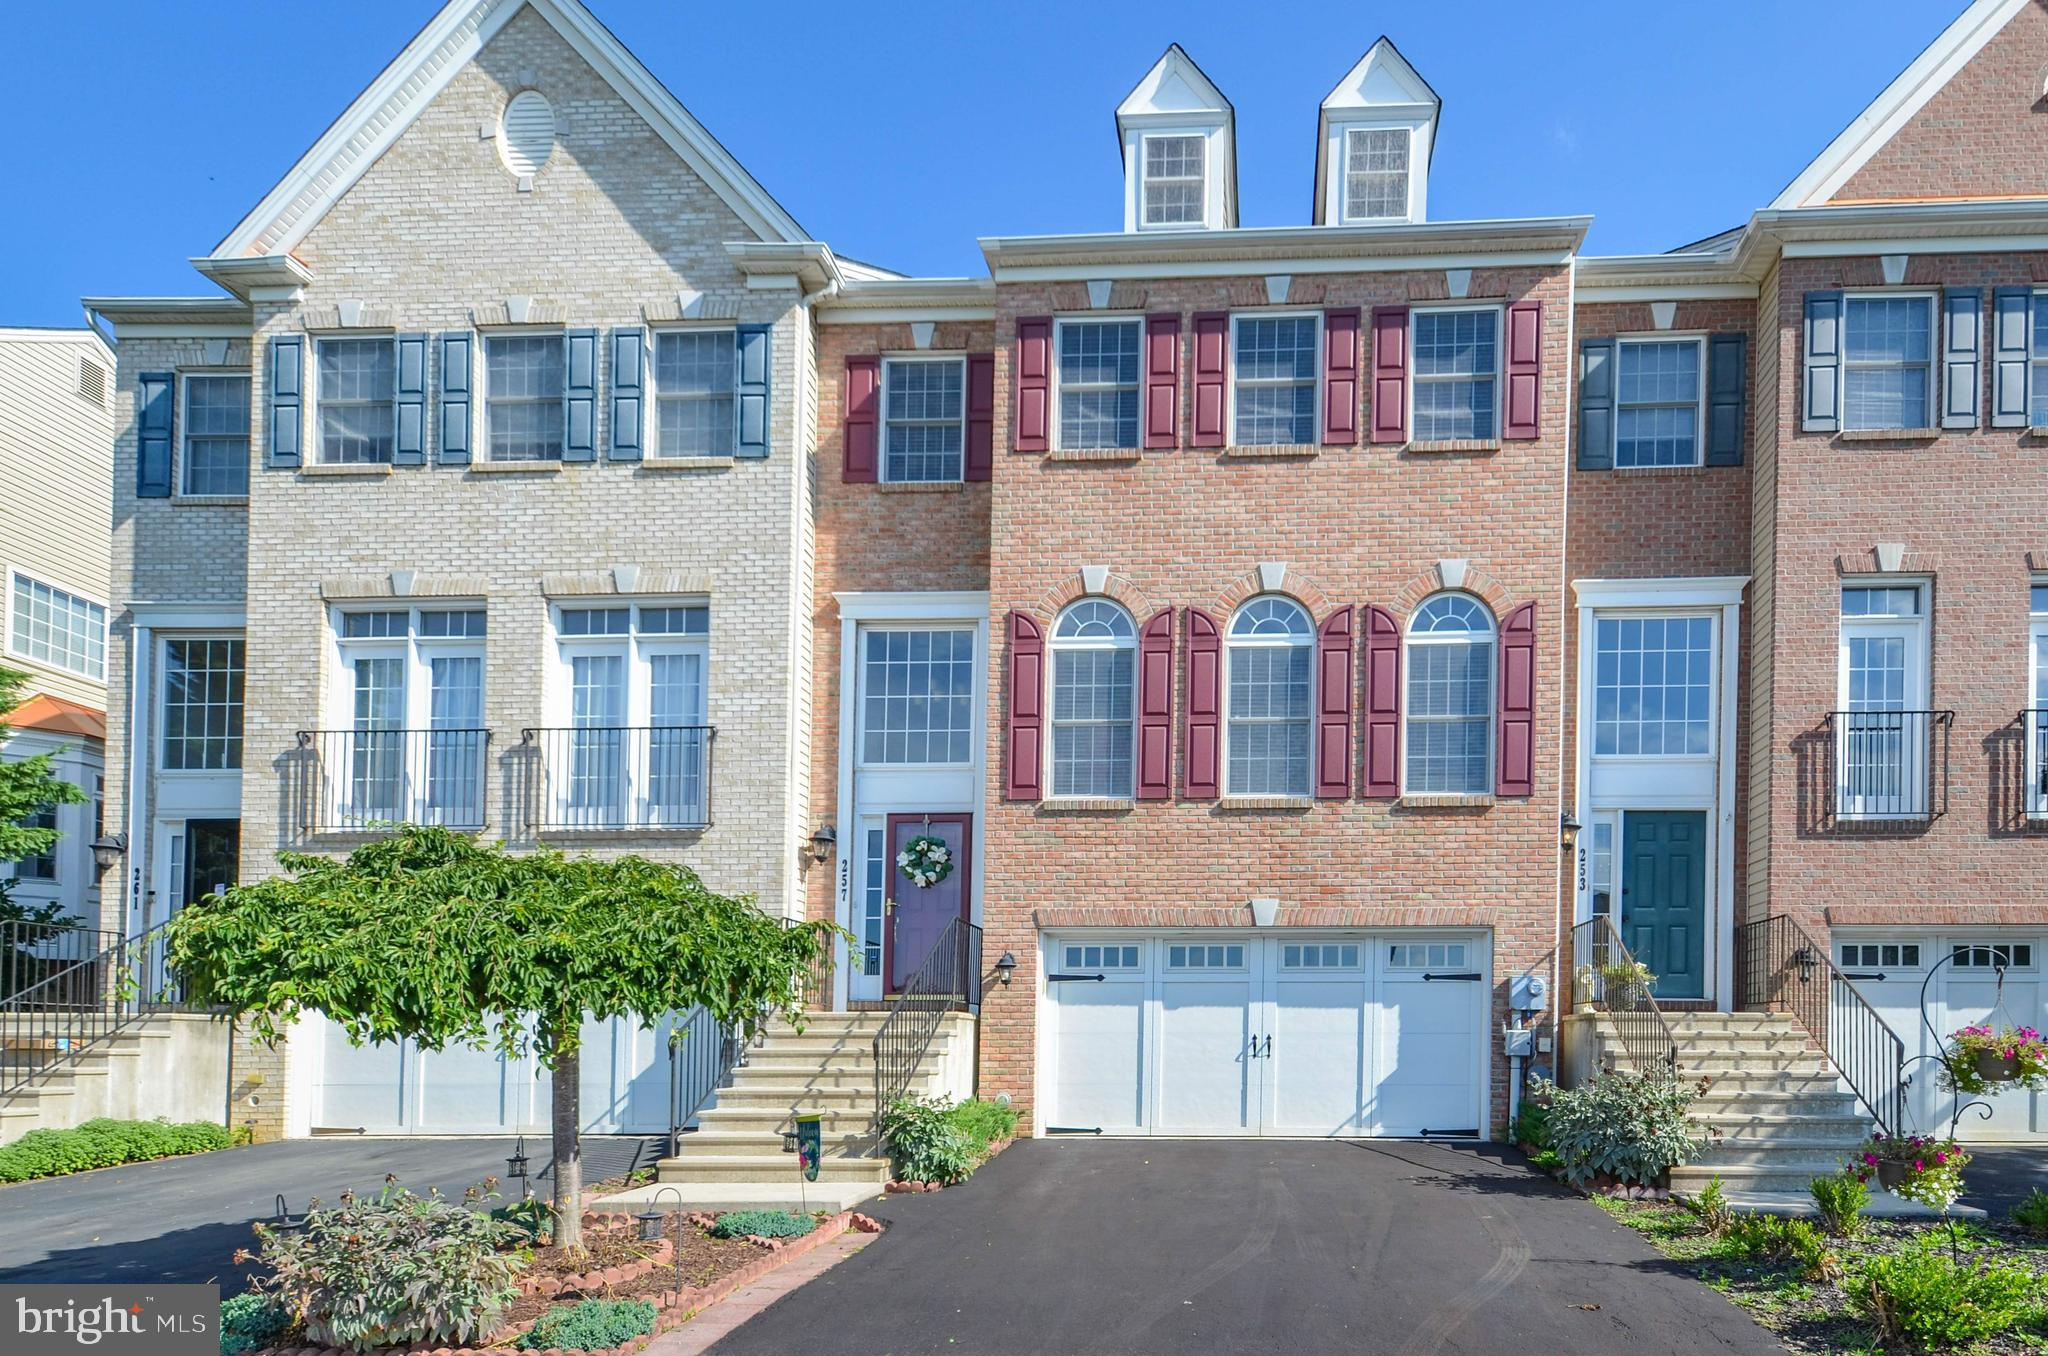 257 PATTERSON WALK, EASTON, PA 18040